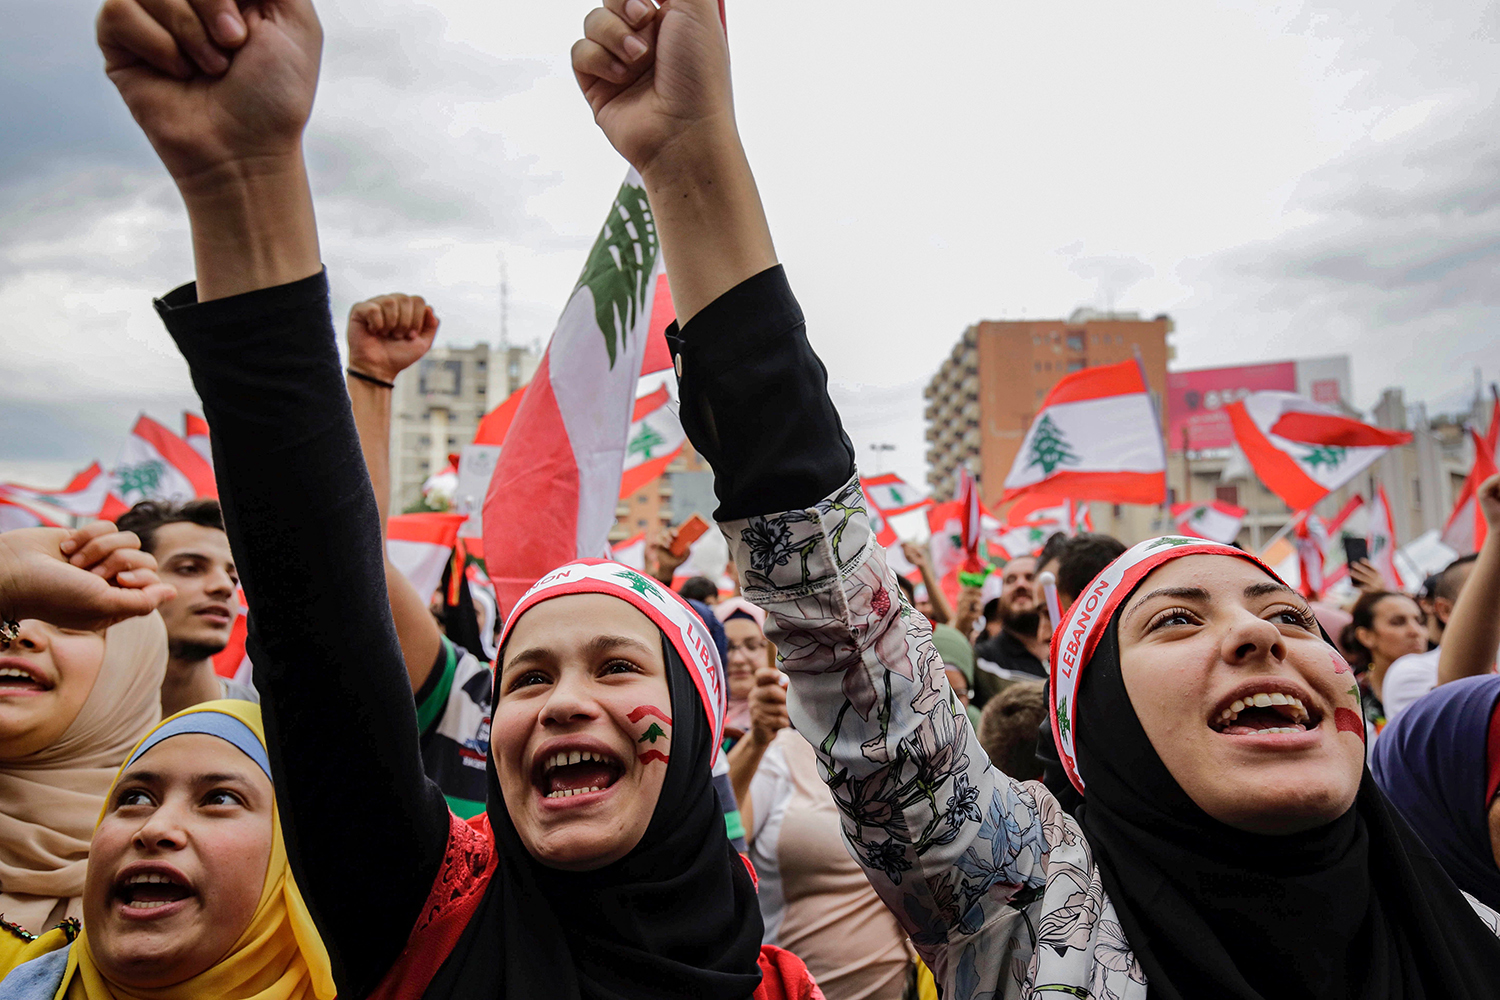 LEBANON | Women wearing bandanas showing the Lebanese national flag chant slogans during a demonstration against tax increases and offical corruption in Tripoli on Oct. 23. IBRAHIM CHALHOUB/AFP via Getty Images